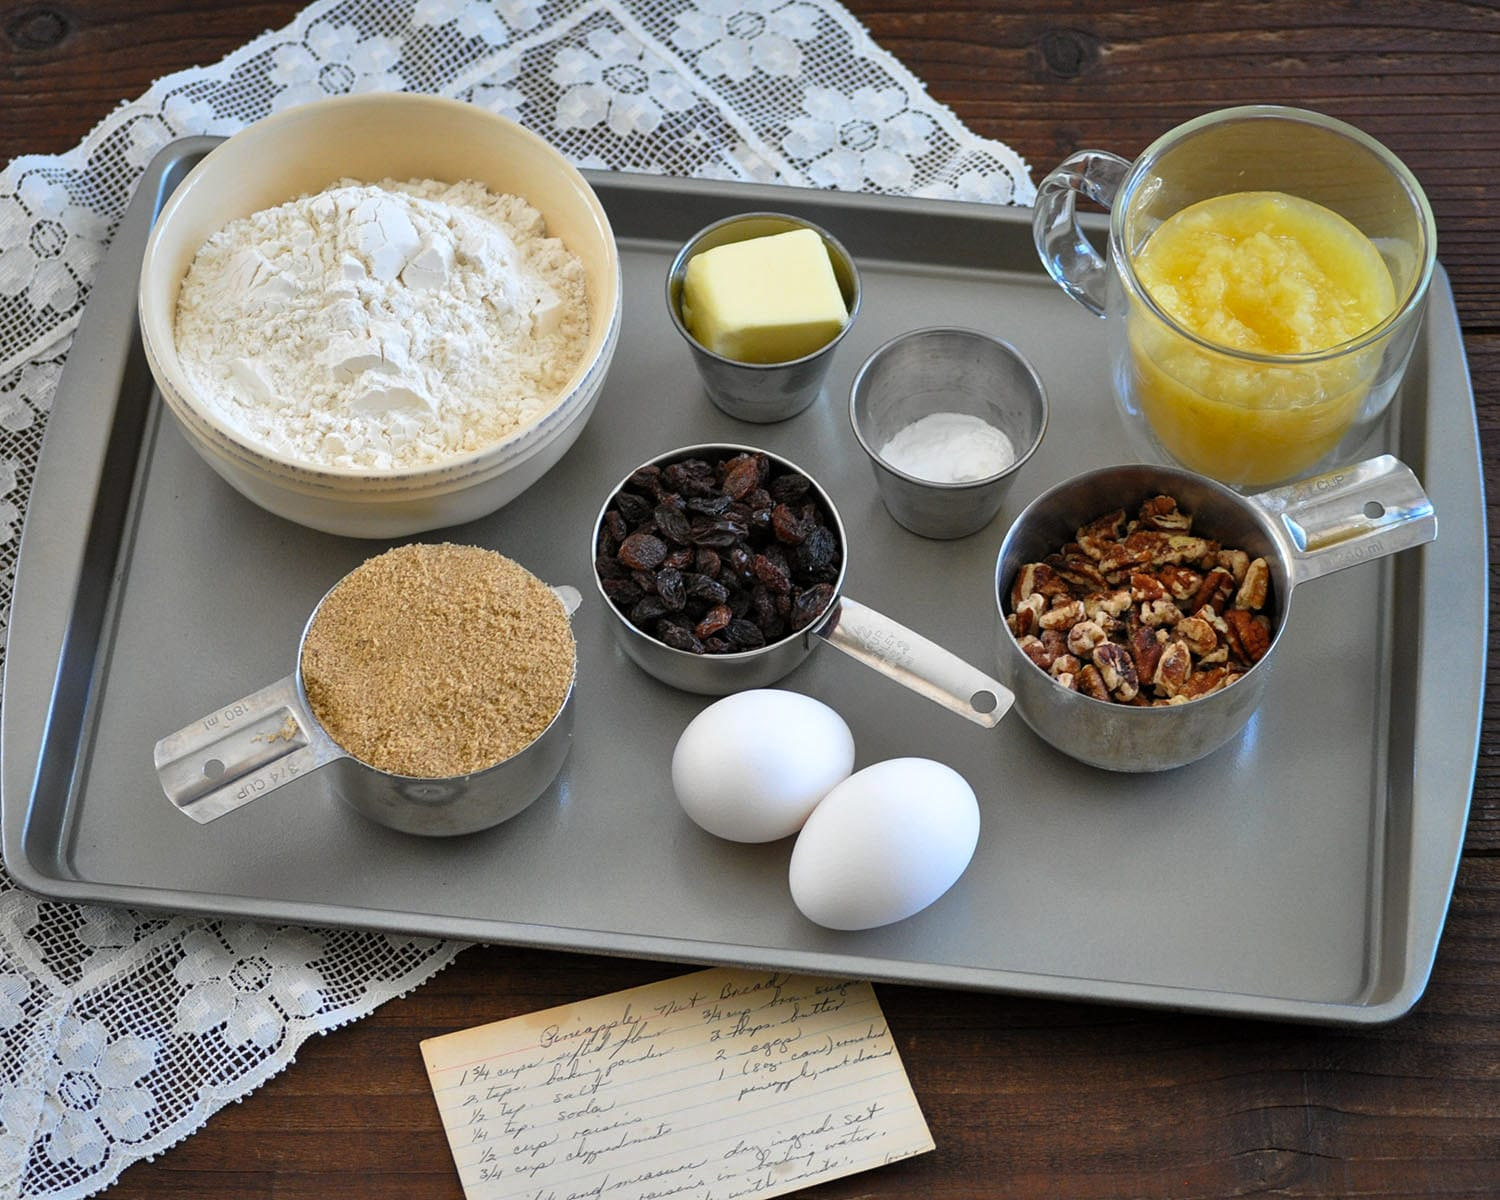 measured lour, raisins, brown sugar, butter, pineapple, nuts, eggs on a cookie sheet next to a recipe card